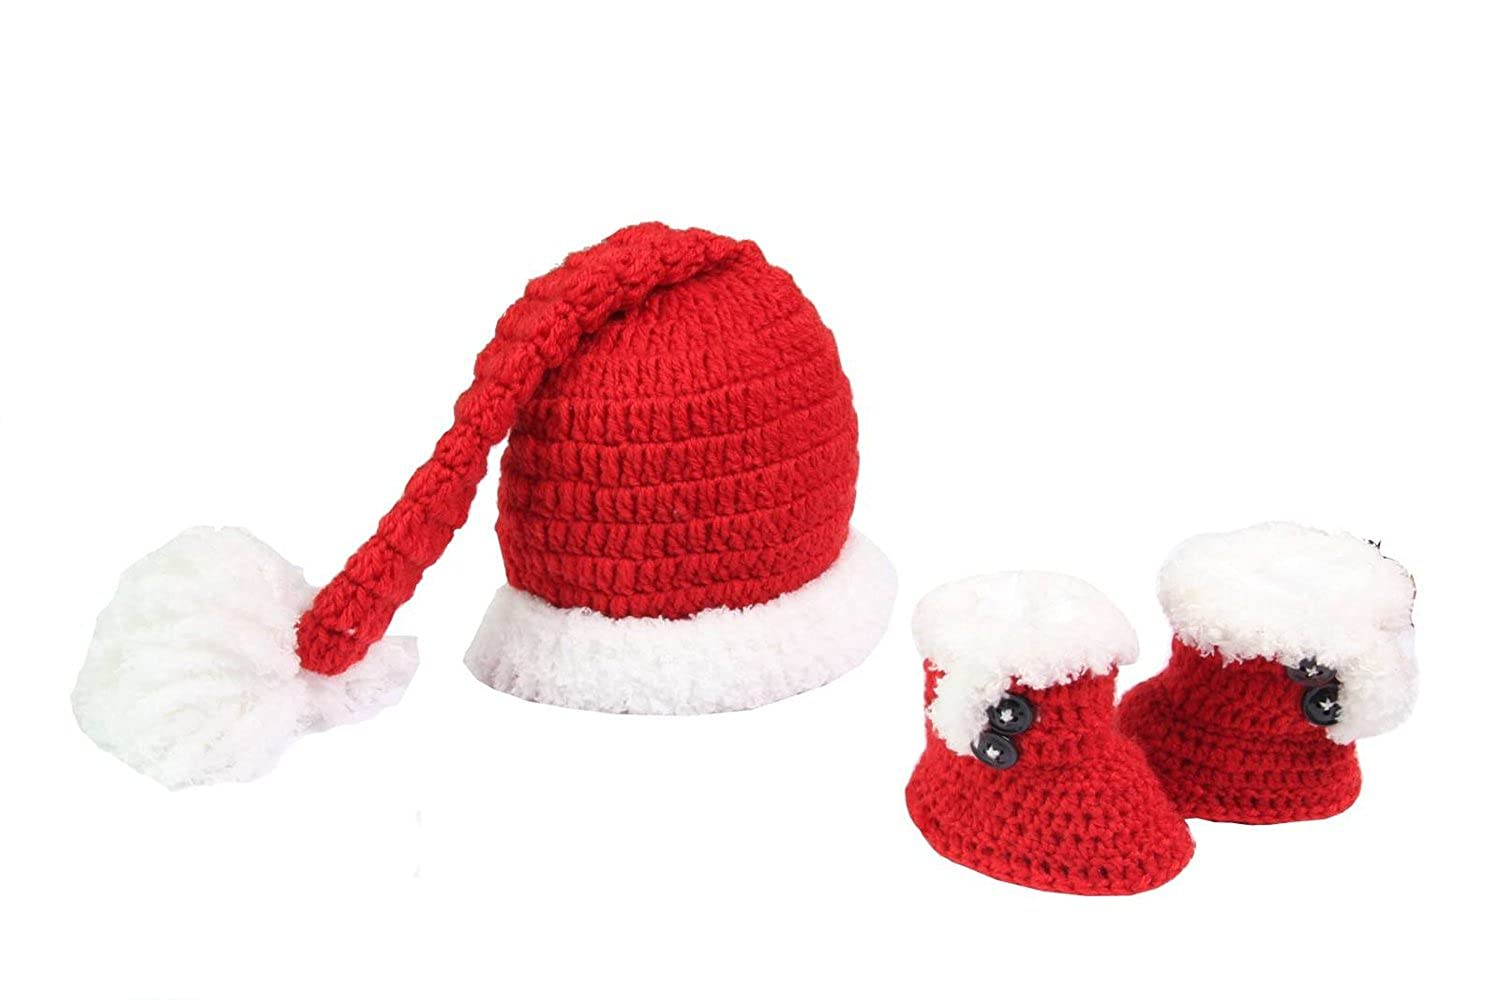 MSP Handmade Newborn Baby Photo Photography Props Crochet Crochet Knitted Prop Girl Boy Shoes Red-and-white Santa Claus Caps Hat Christmas Cap Set Clothes Outfits 0-12 Months MrSleeper 03W3525